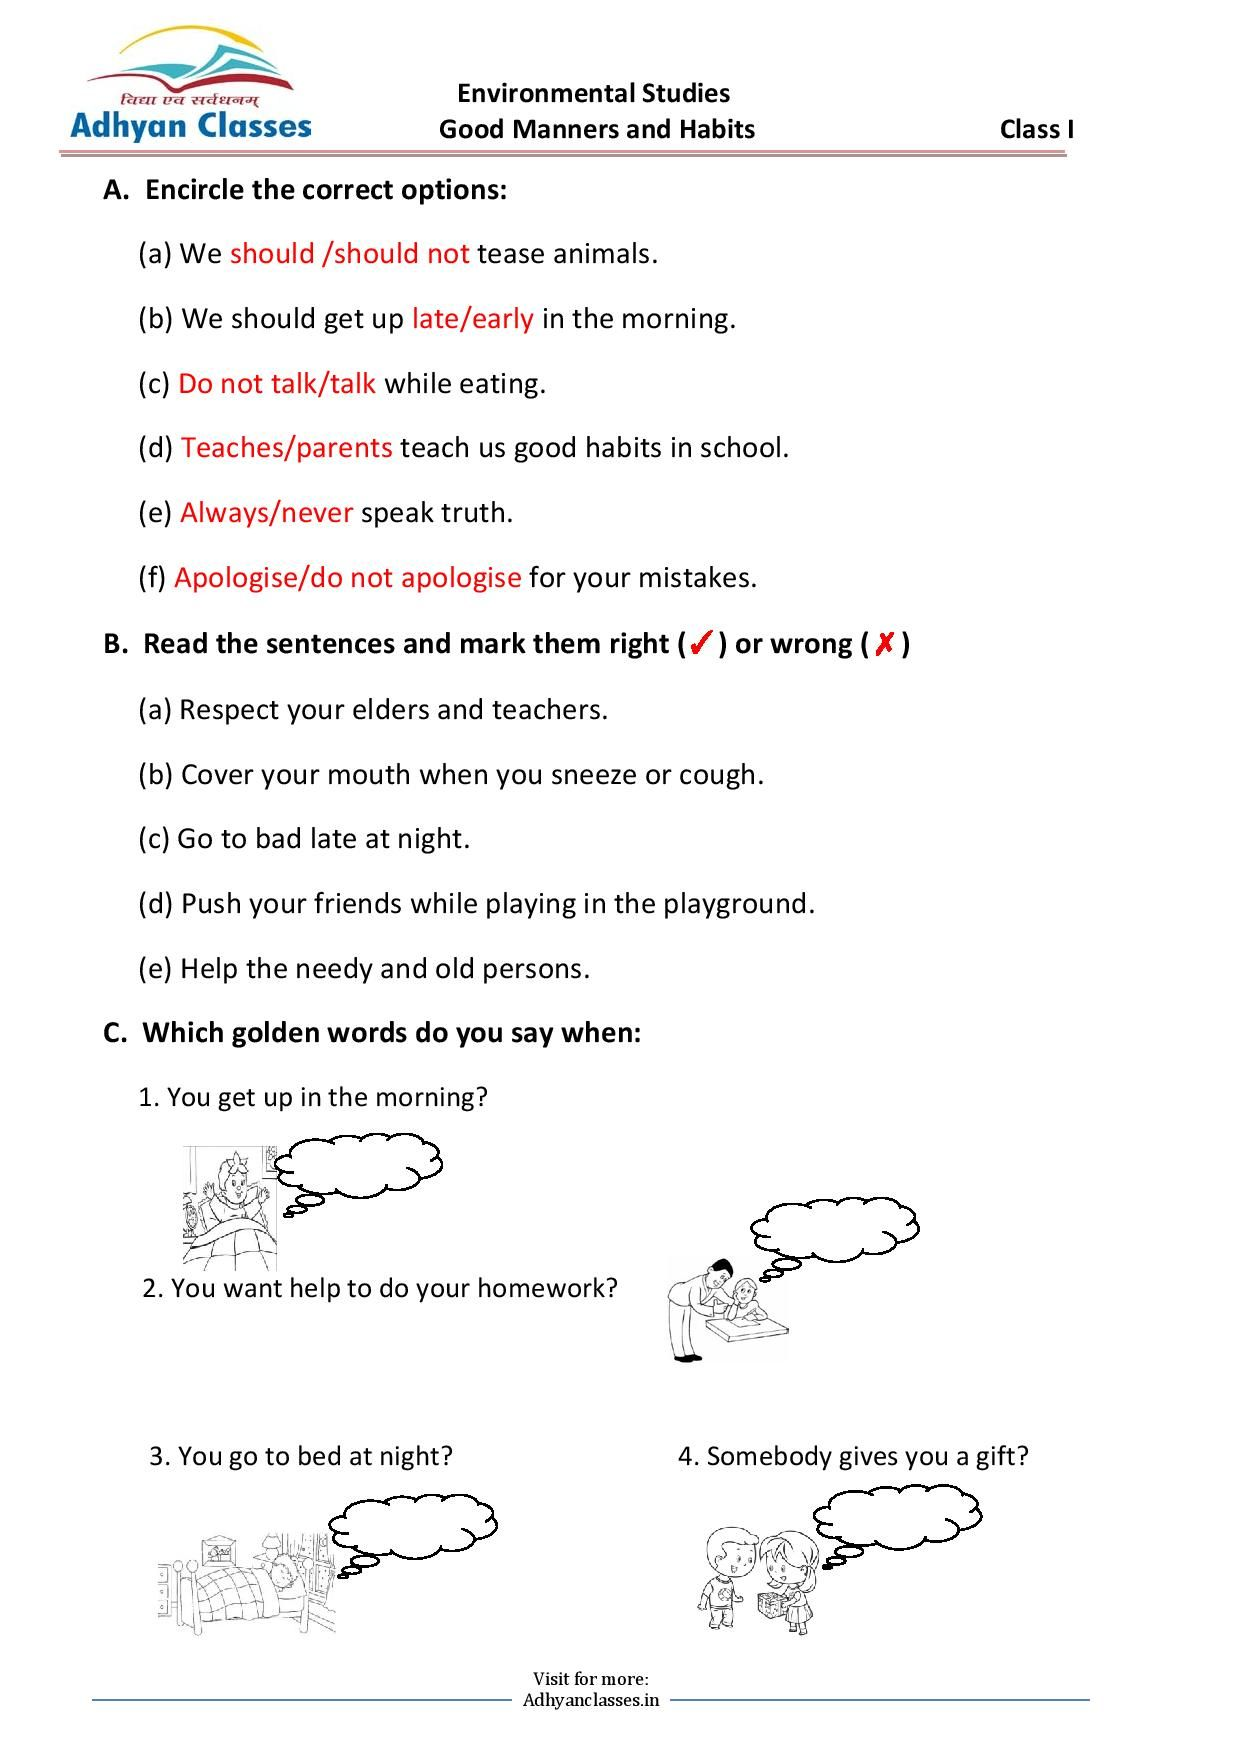 Good Manners And Habits Worksheet For Grade I In